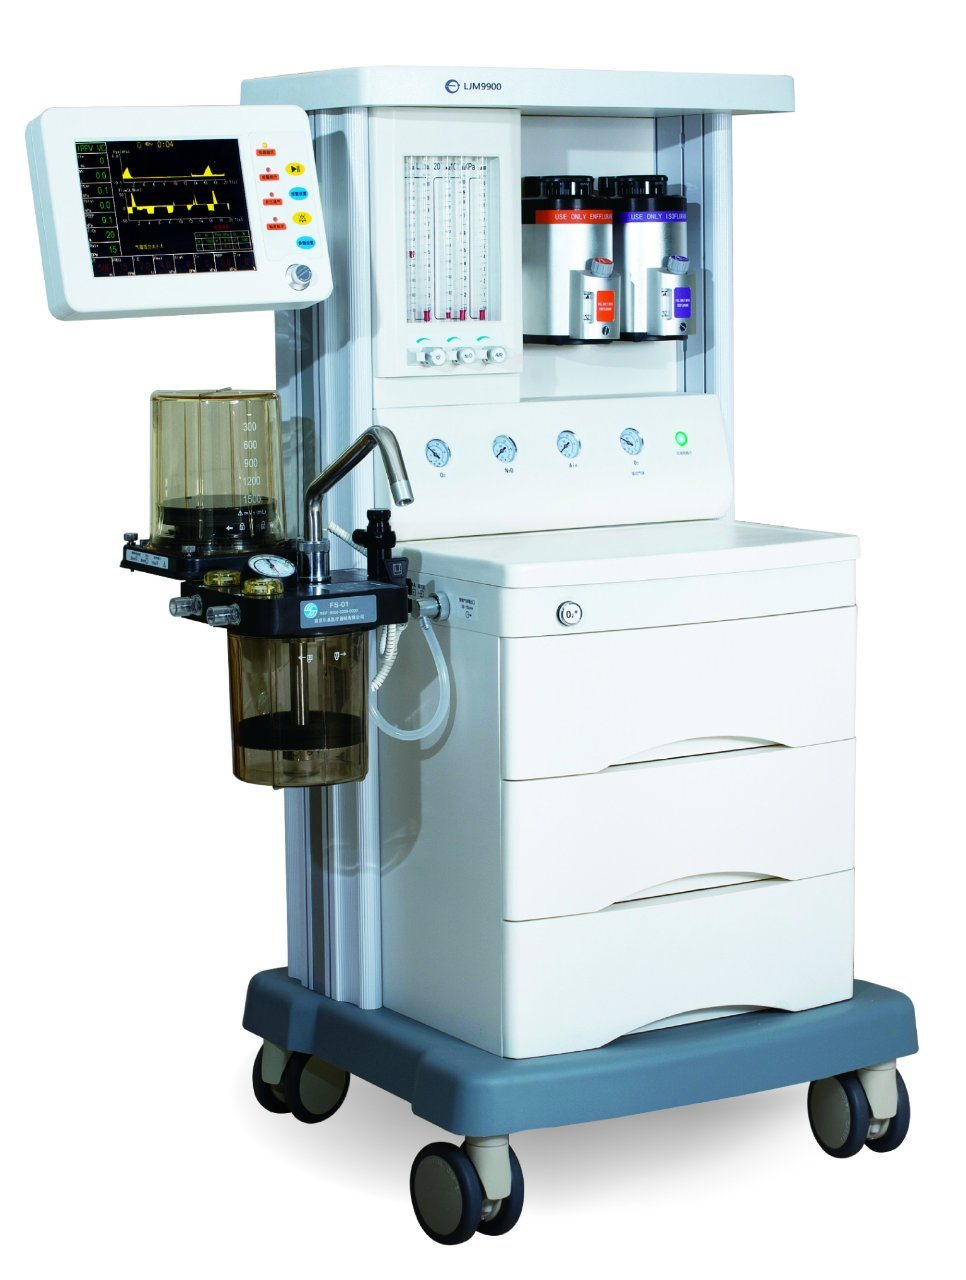 Advanced Medical Anaesthesia/Anesthesia Machine Ljm 9900 with Ce Certificate